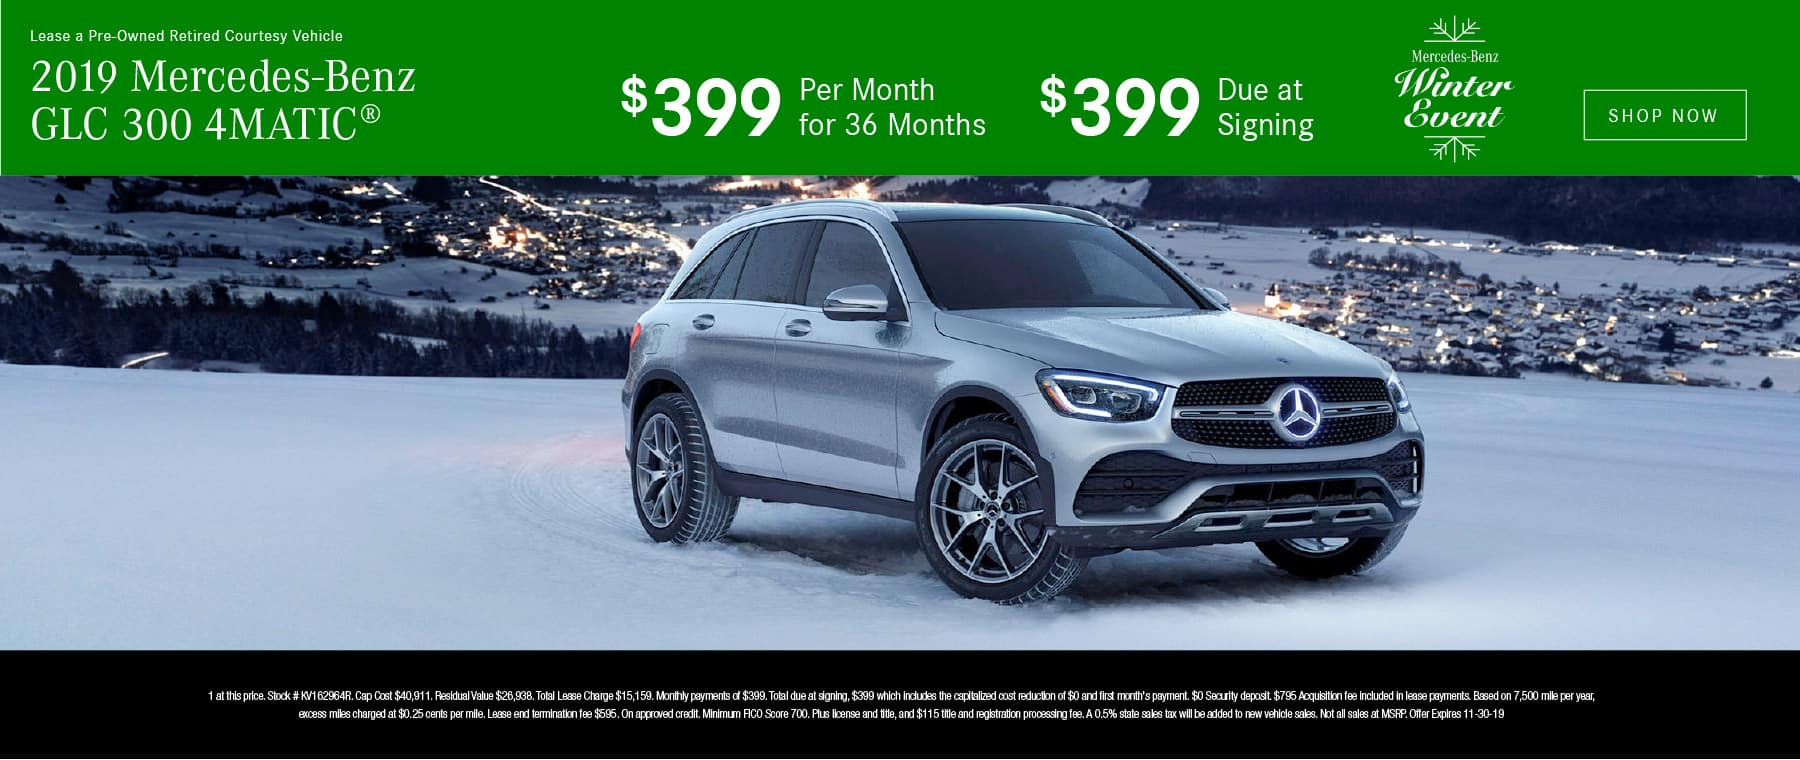 2019 Mercedes-Benz GLC 300 4MATIC